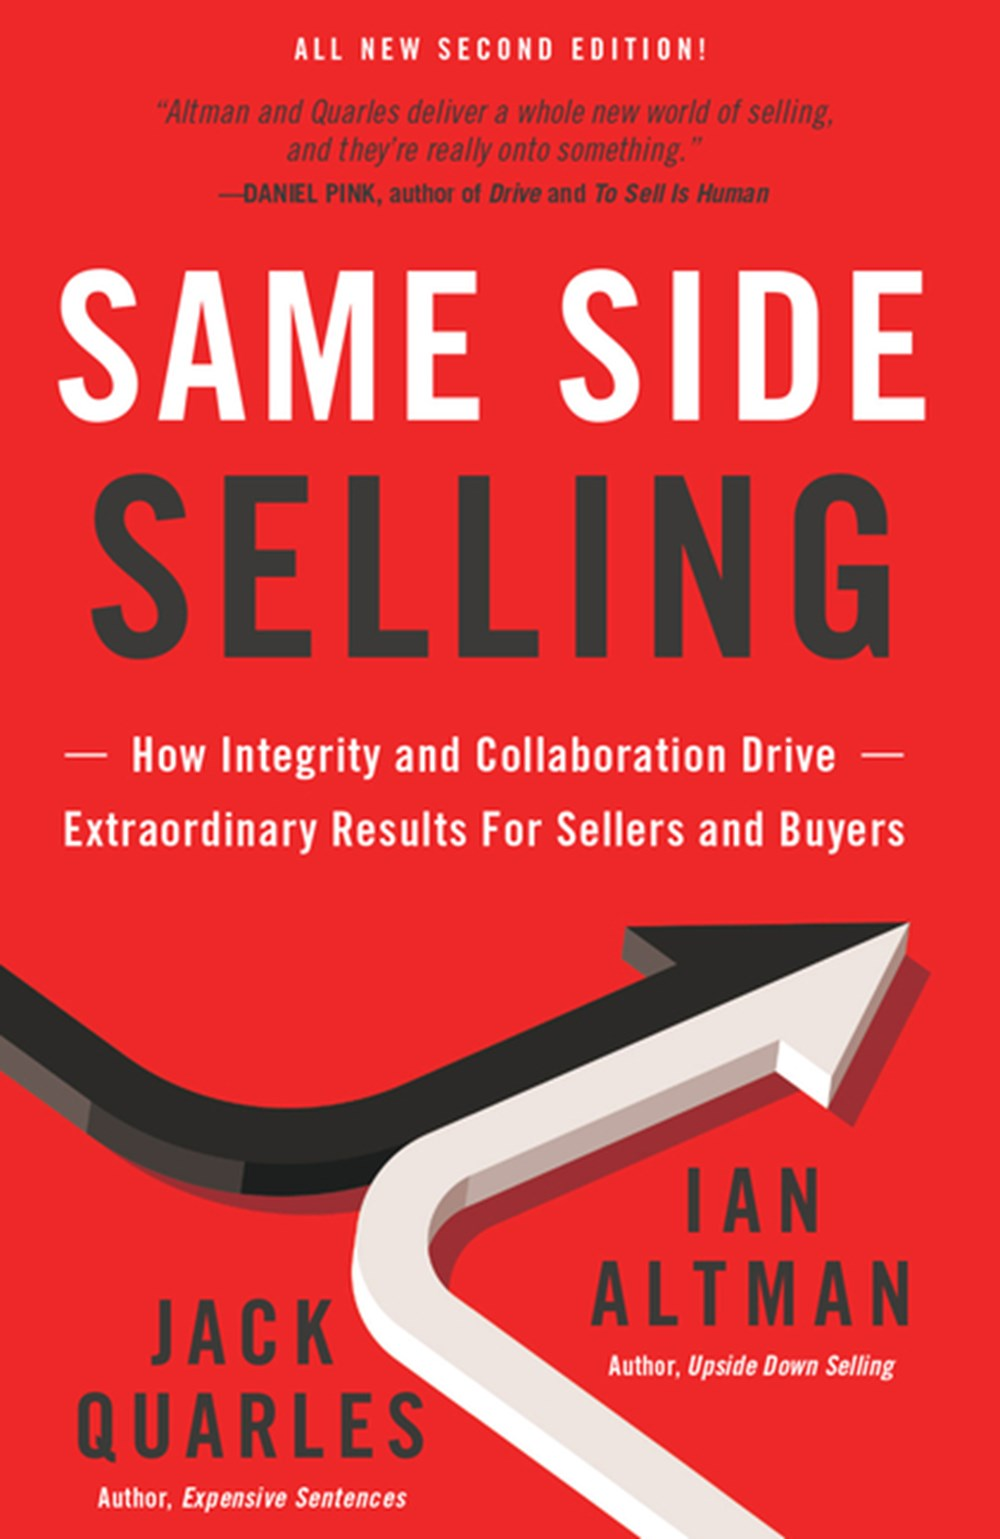 Same Side Selling How Integrity and Collaboration Drive Extraordinary Results for Sellers and Buyers